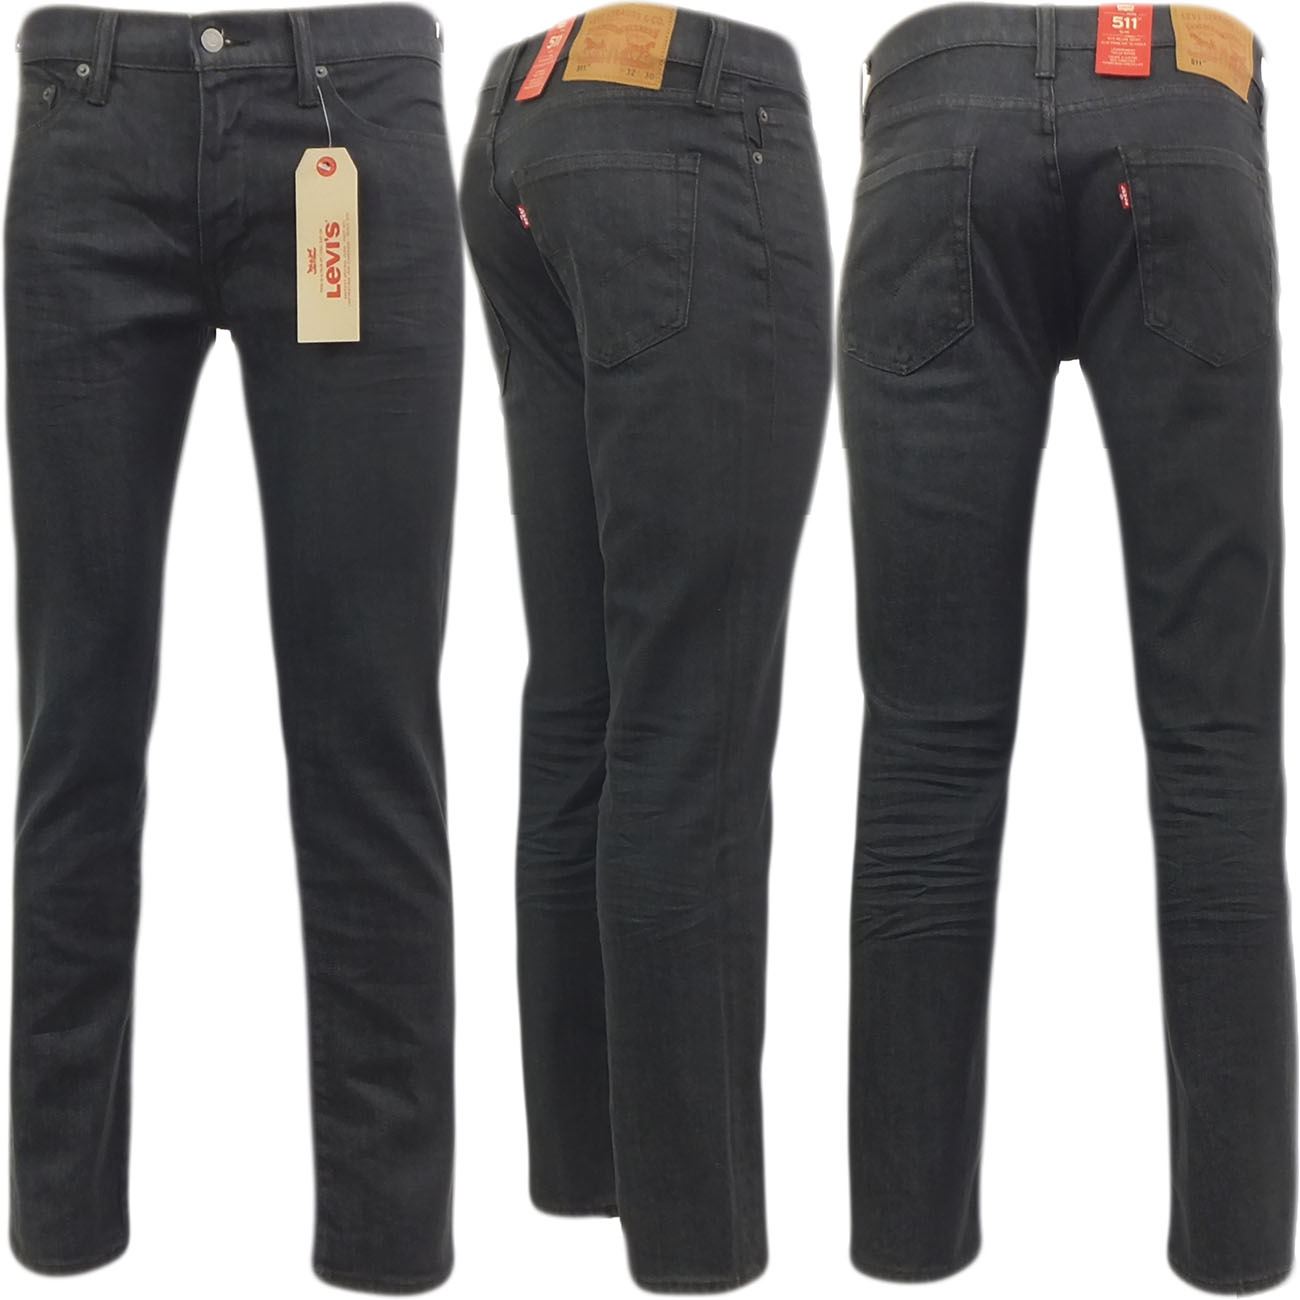 herren levi strauss 511 slim fit jean 39 newby 39 dunkelgrau ebay. Black Bedroom Furniture Sets. Home Design Ideas